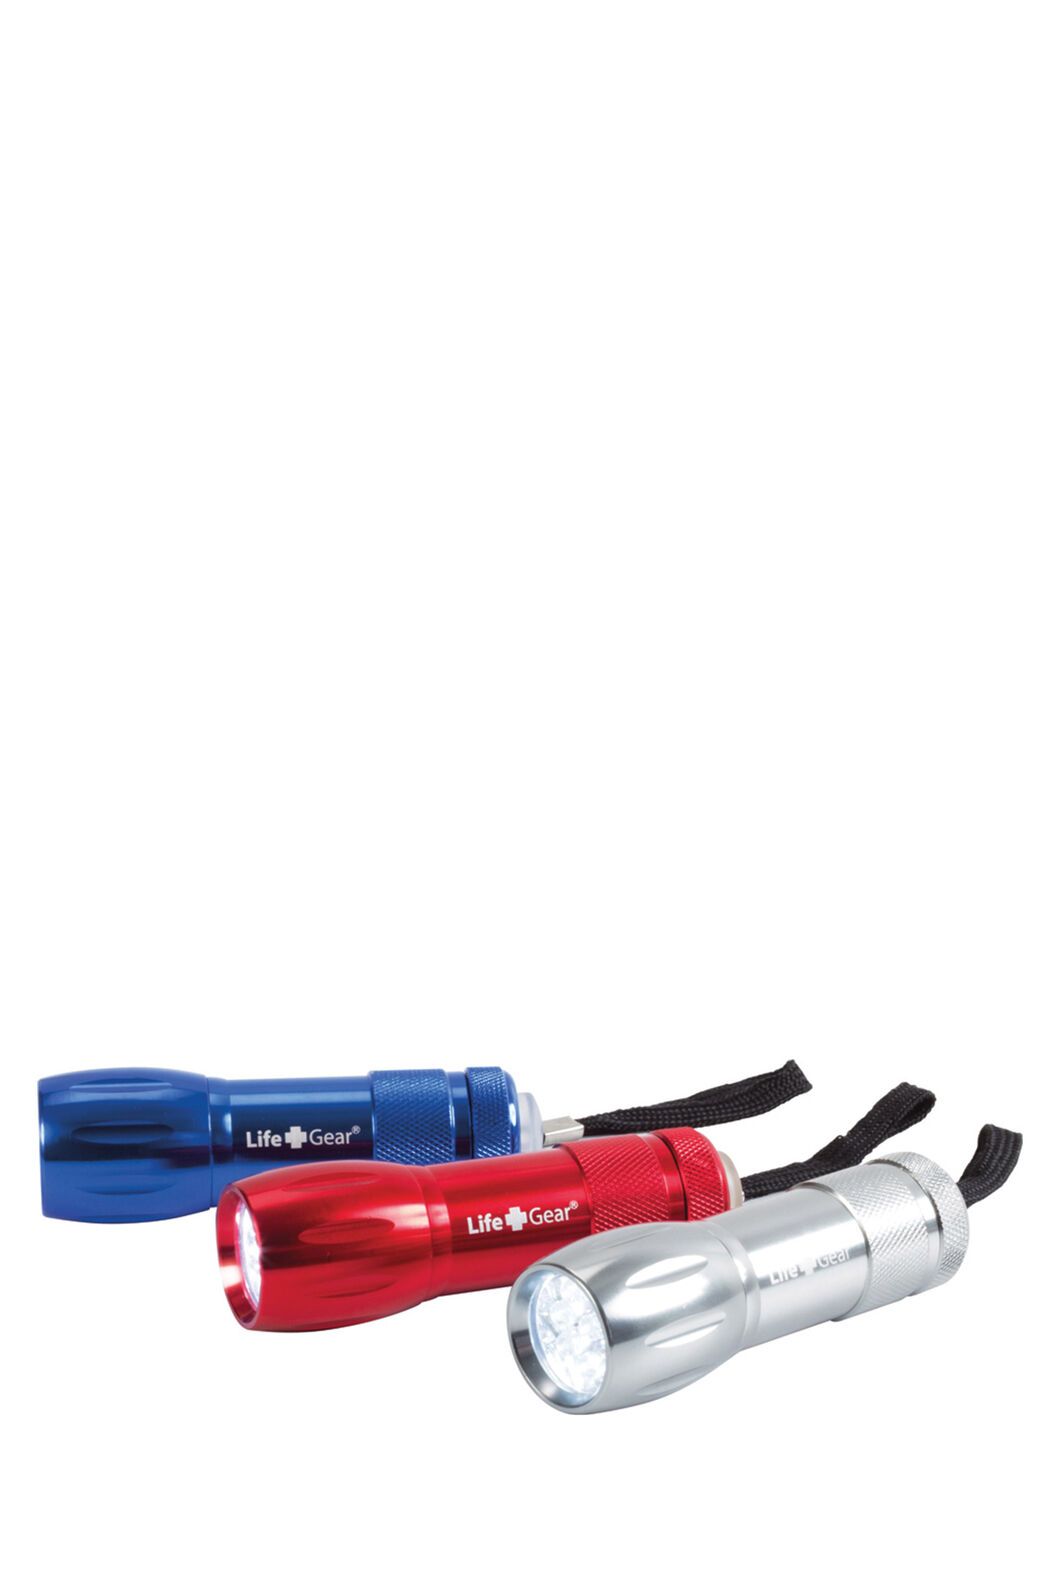 Life Gear 9 LED Aluminium Torch, None, hi-res